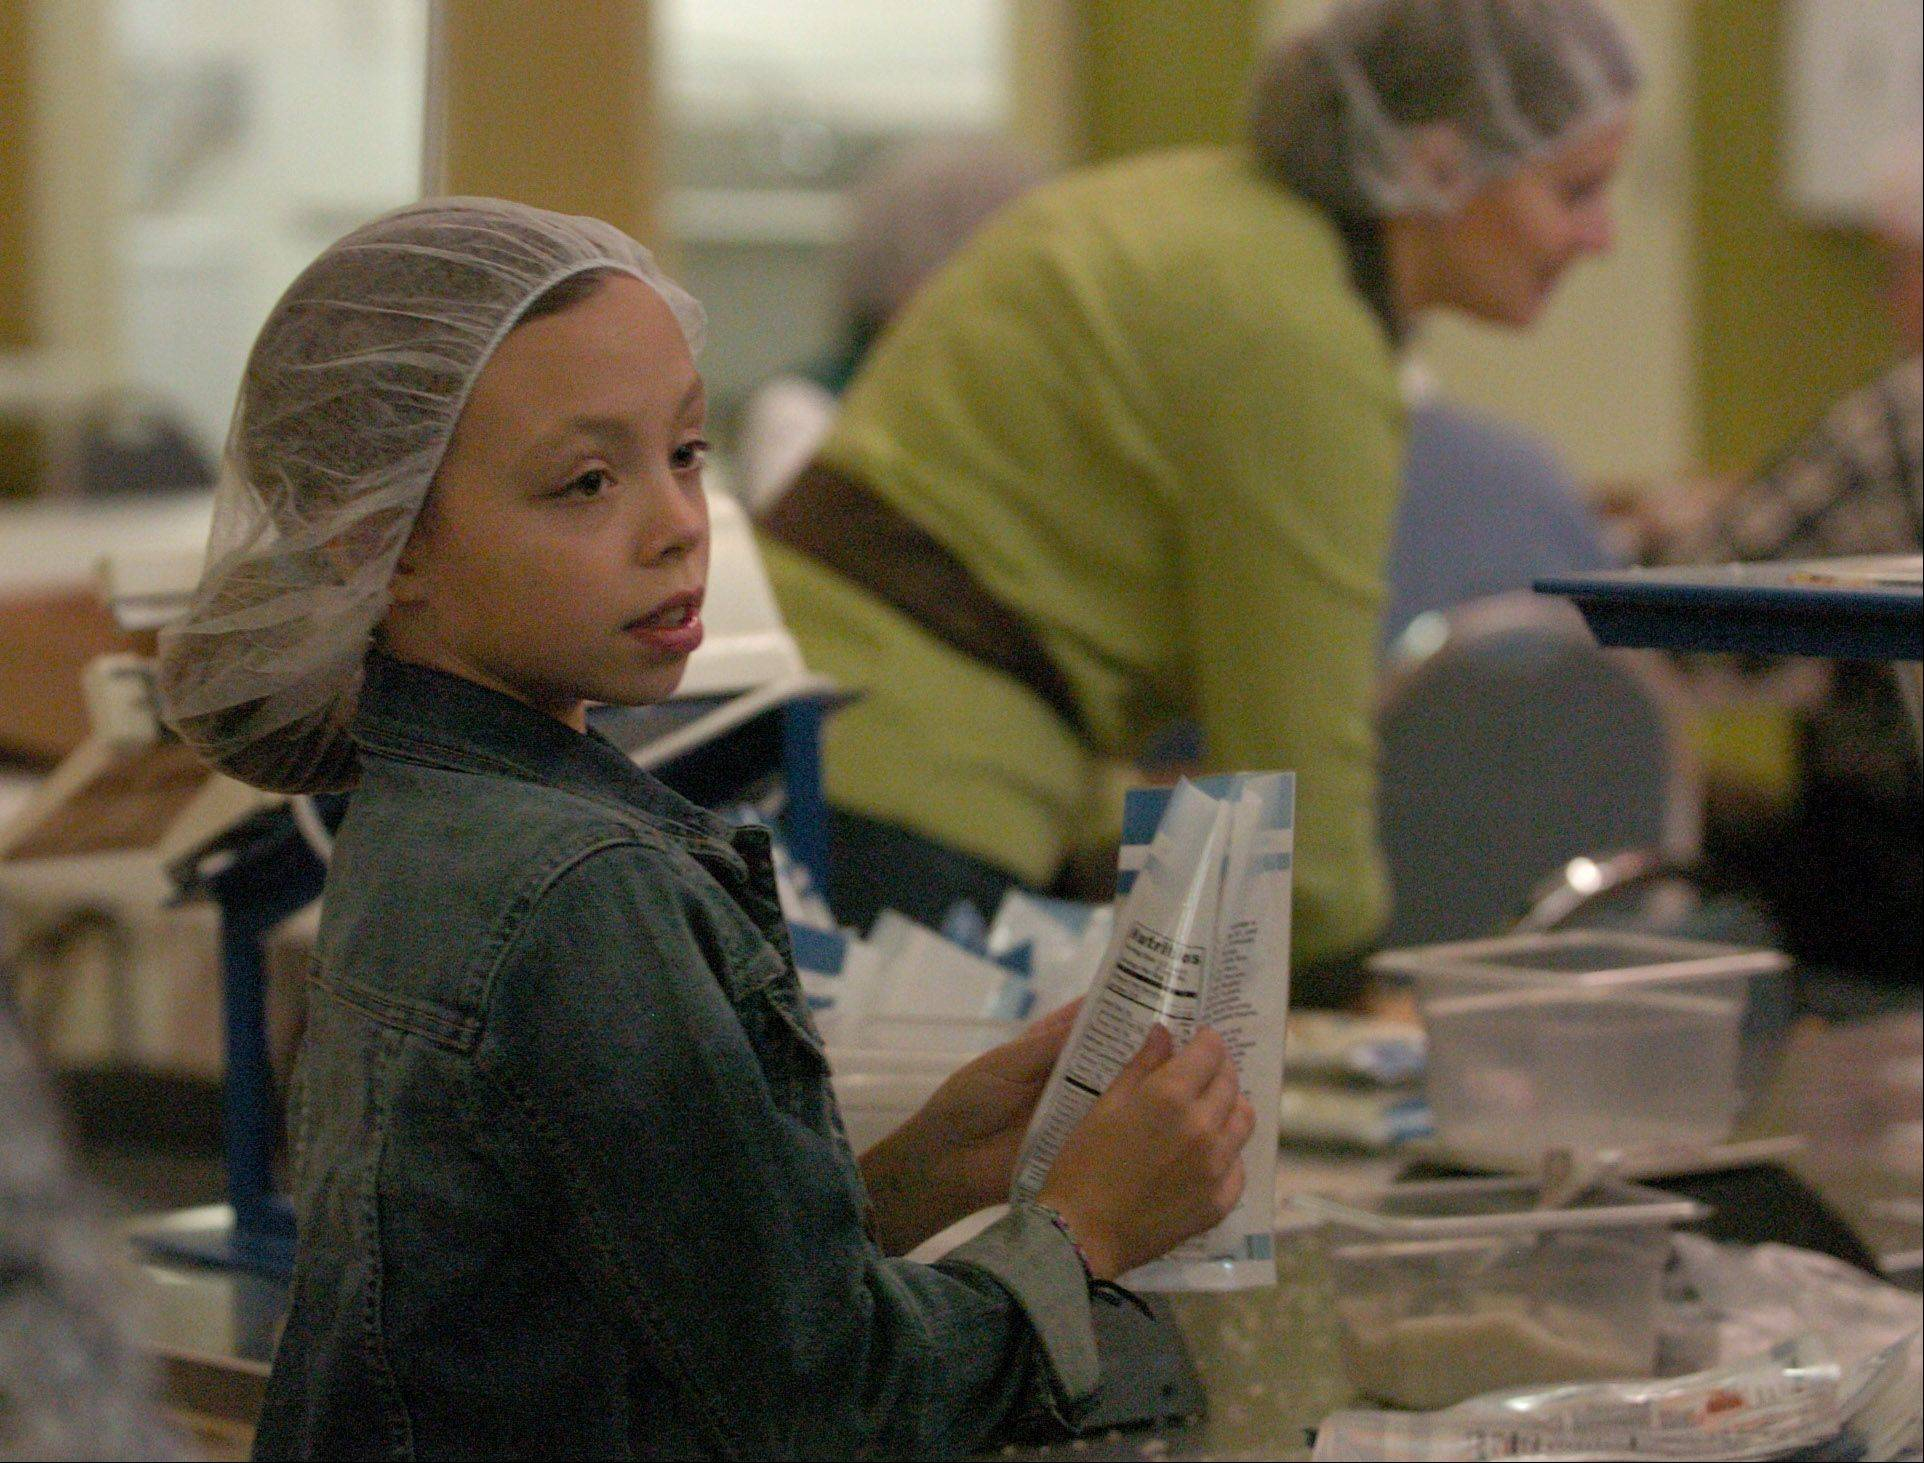 Kaitlyn Weiss of Huntley, a member of the Fox Valley Home Schoolers, packs food at Feed My Starving Children in Schaumburg.